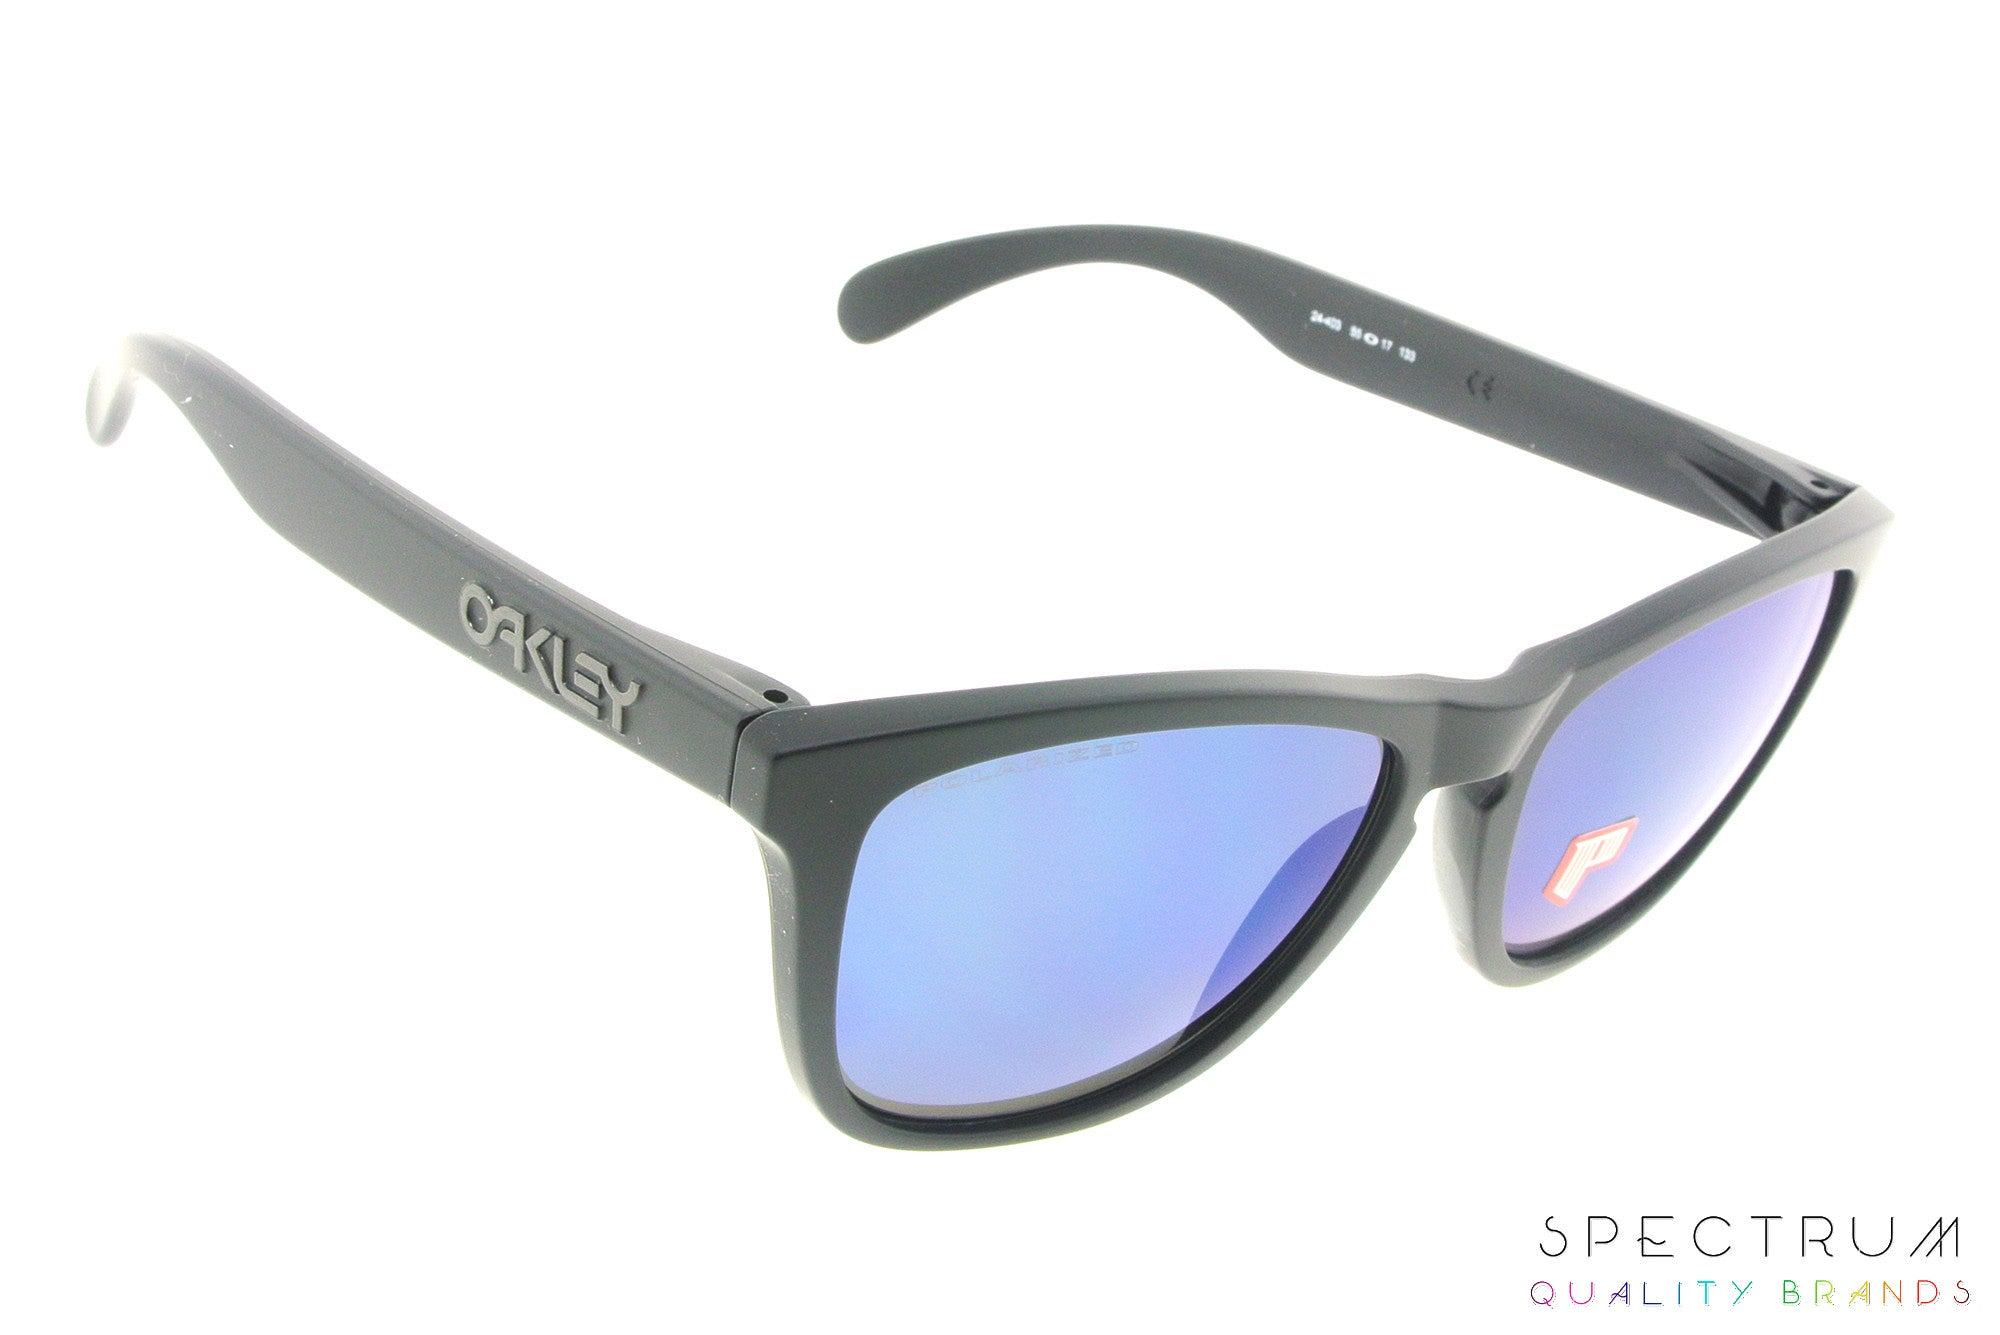 d754883f26 ... Oakley Polarized Sunglasses Frogskins OO9013 24-403 Matte Black with Ice  Iridium Lenses ...